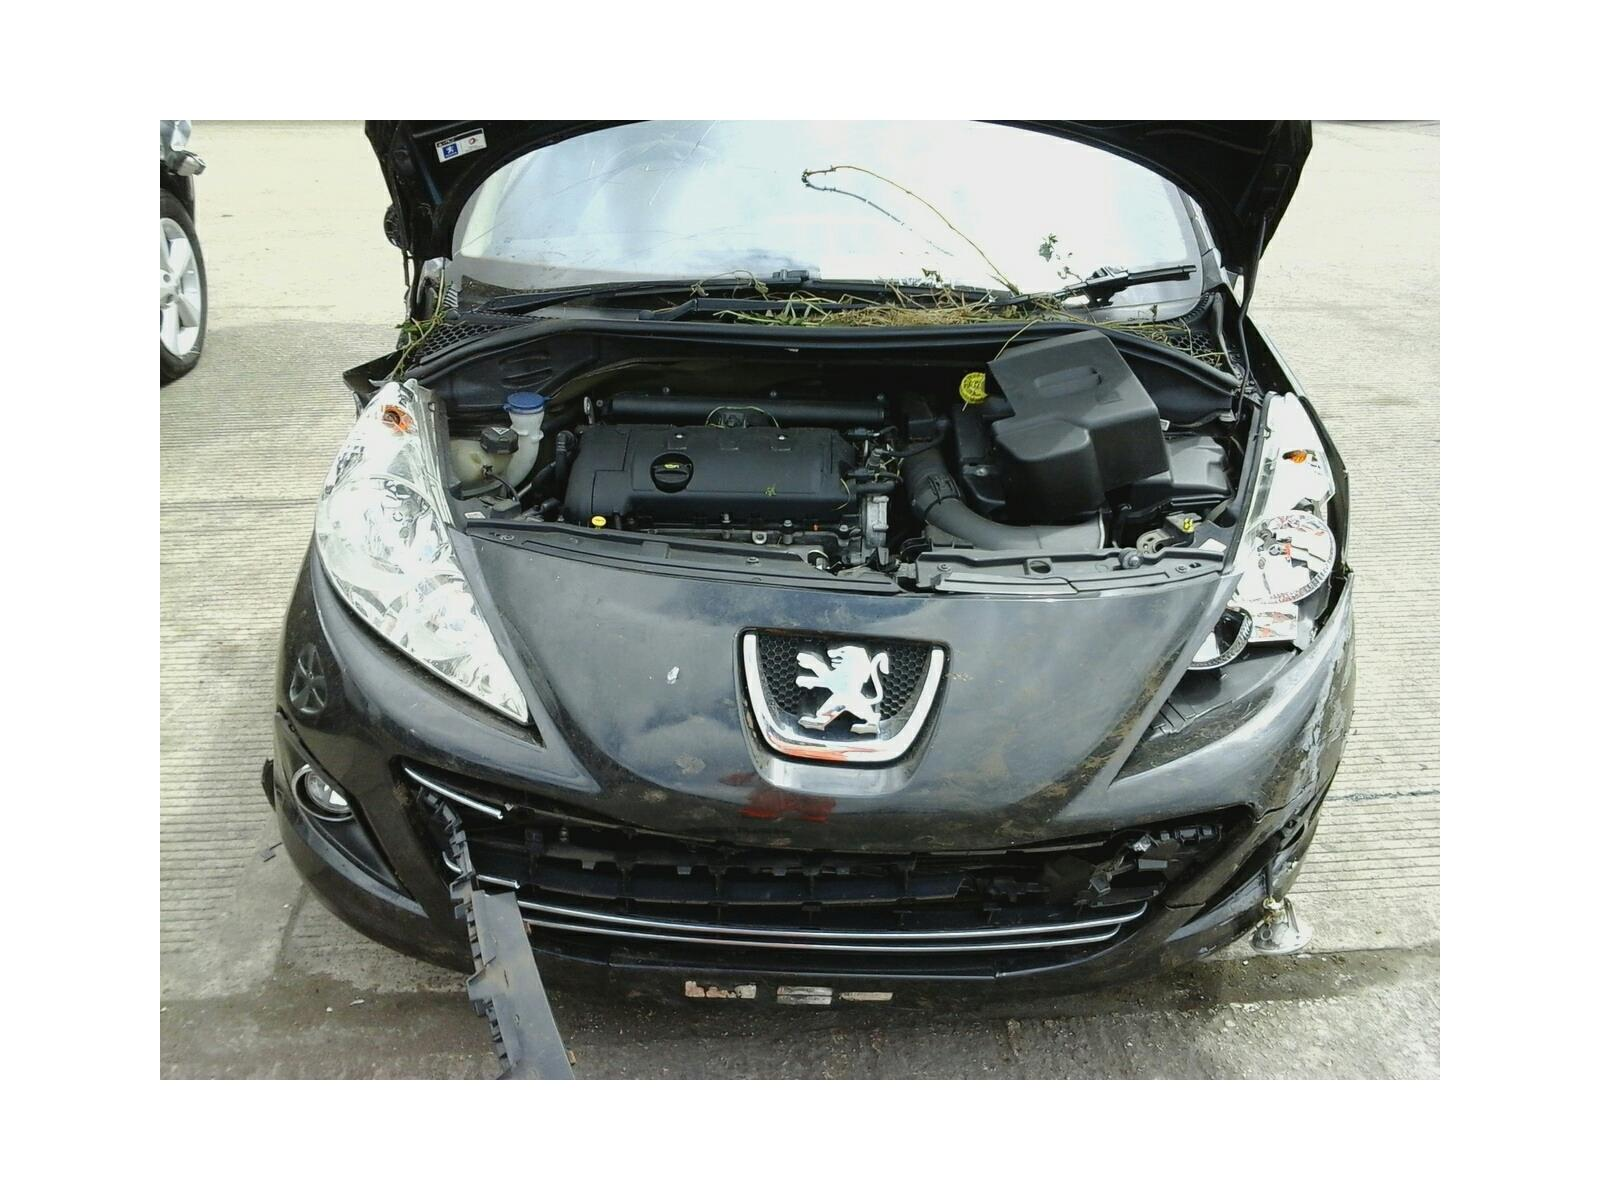 Peugeot 207 Under Bonnet Fuse Box Electrical Wiring Diagrams 206 Ebay Schematic 406 Headlight